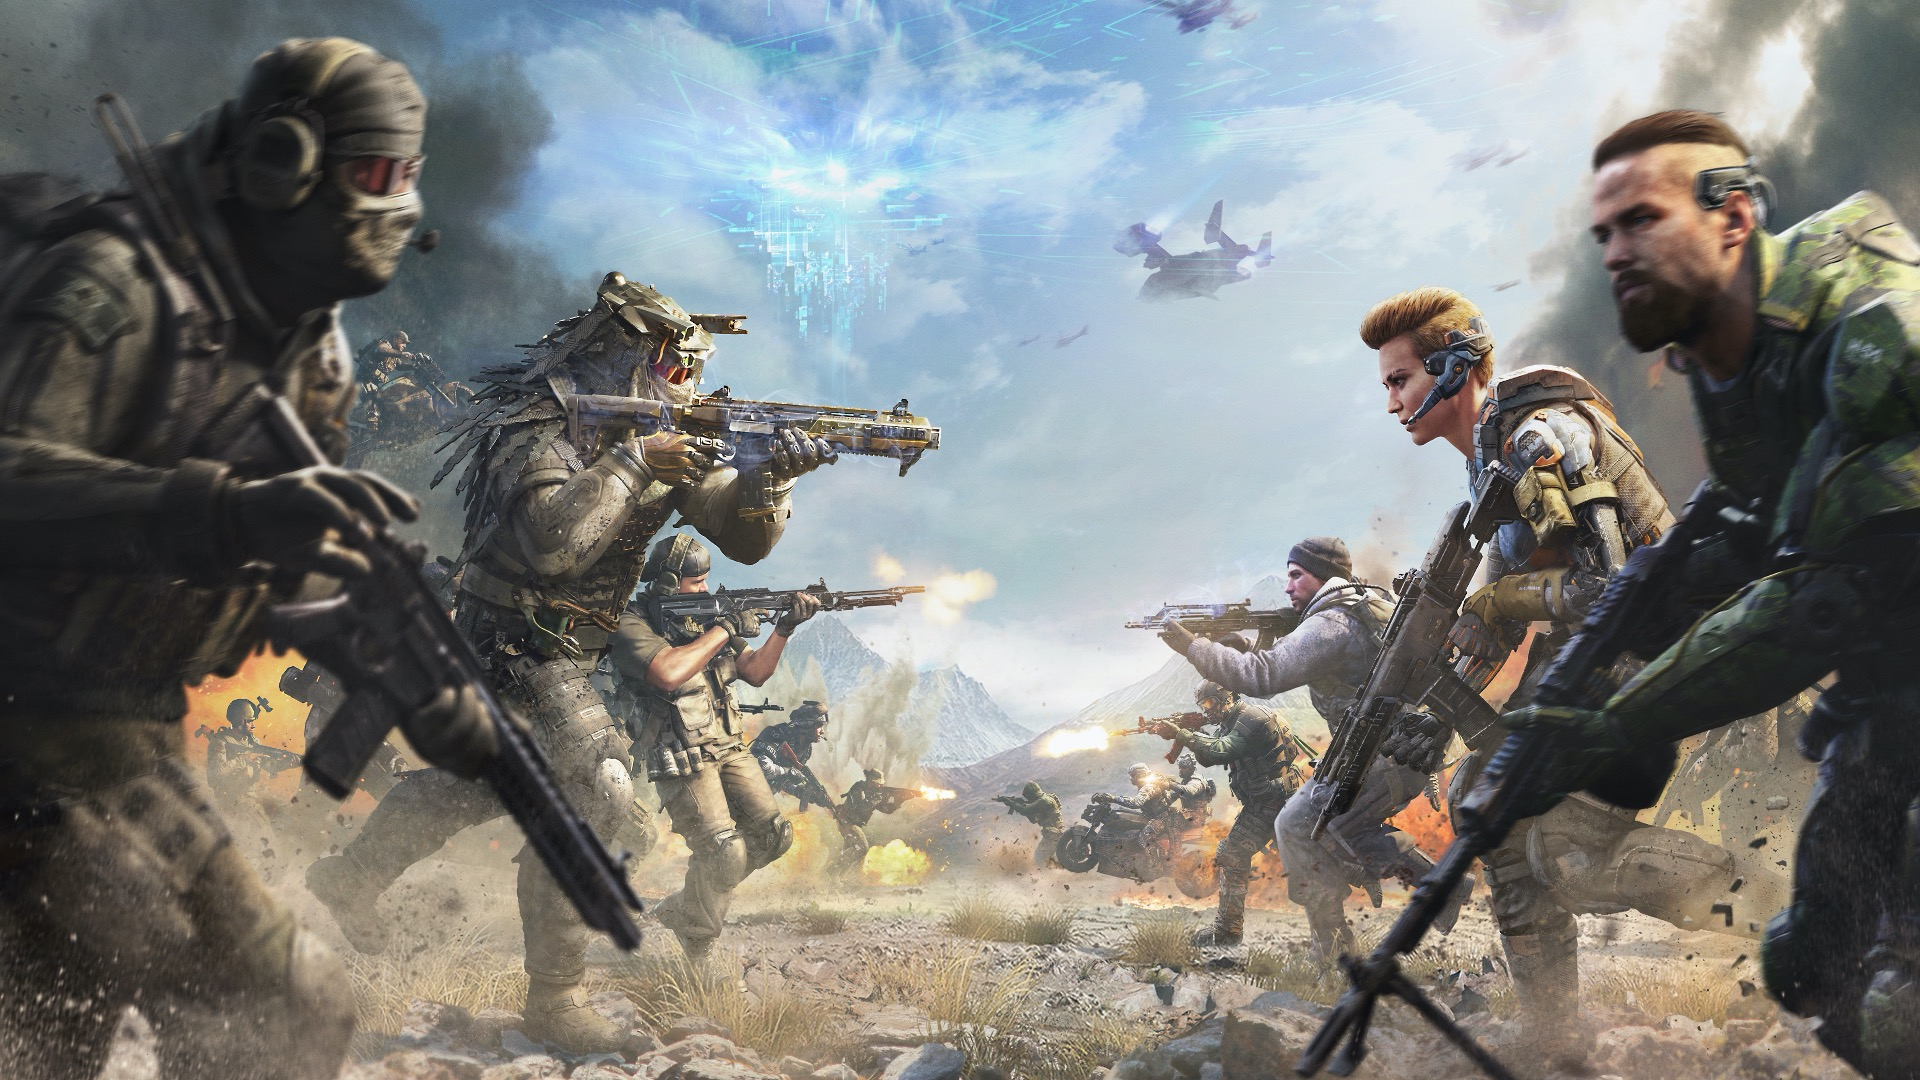 Warzone is Call of Duty's 150-player answer to Fortnite and Apex Legends